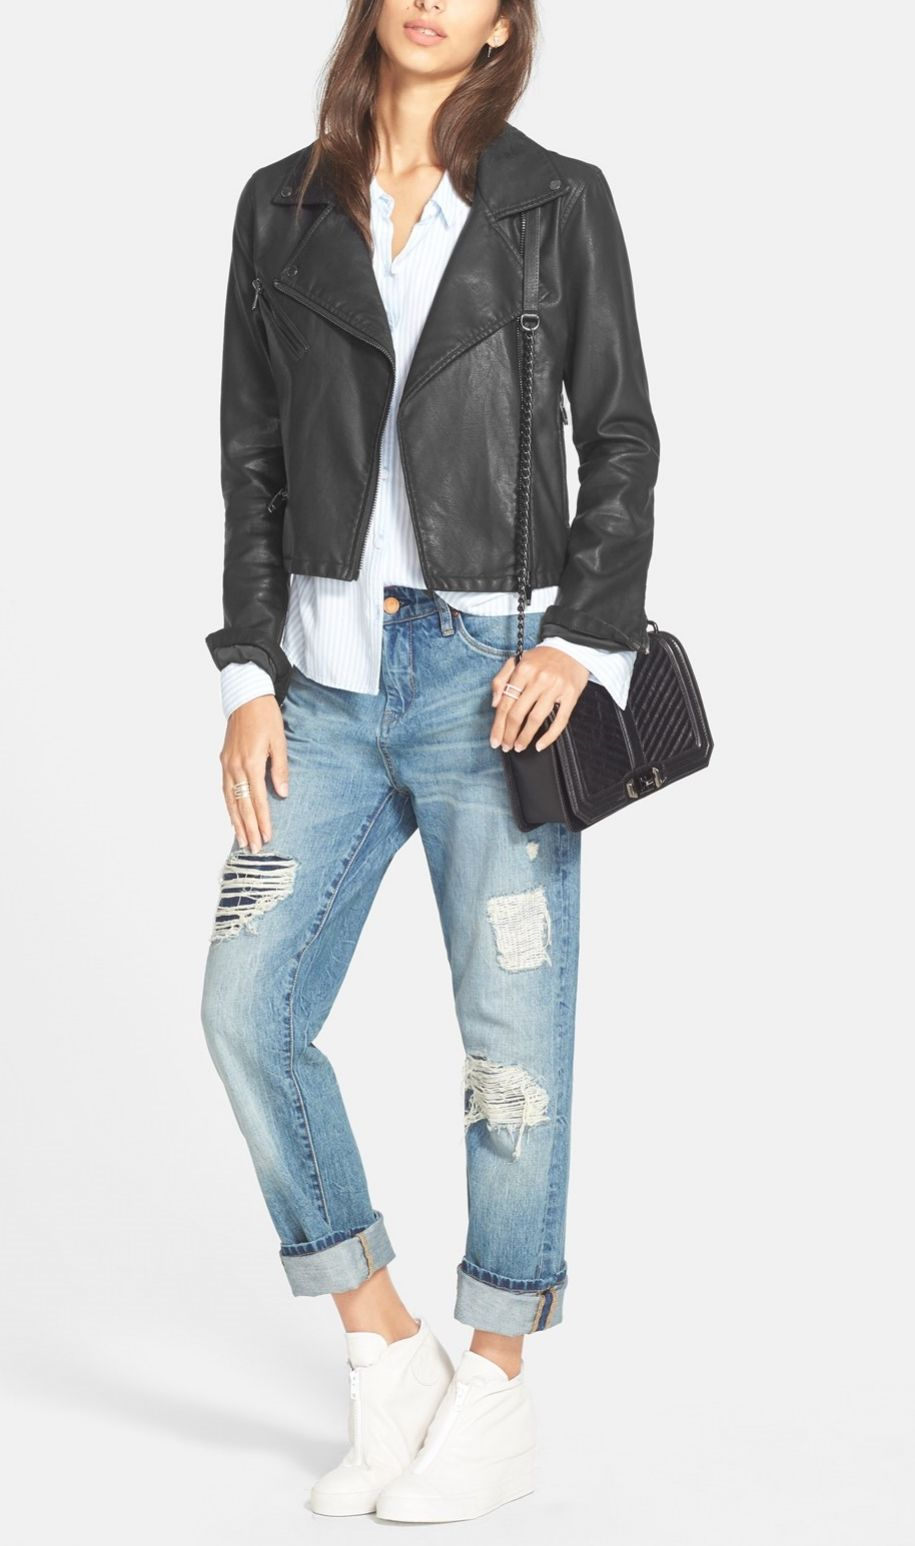 The faux leather jacket styled with boyfriend jeans, a quilted crossbody bag and sneakers is the perfect, casual with-a-hint-of-edge outfit.